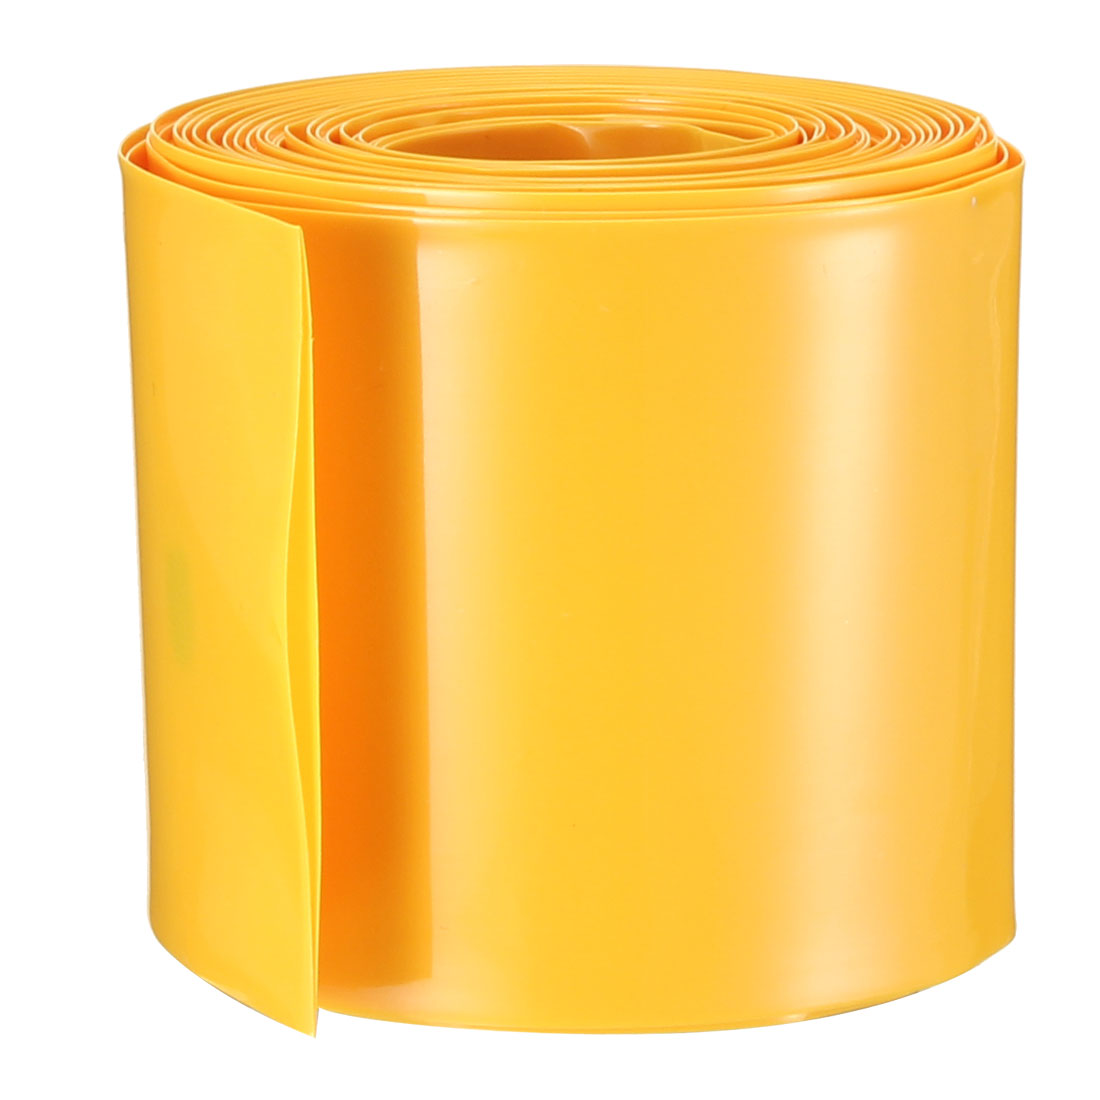 PVC Heat Shrink Tubing Tube 50mm Battery Wrap for 2 x 18650 Battery 5M Yellow